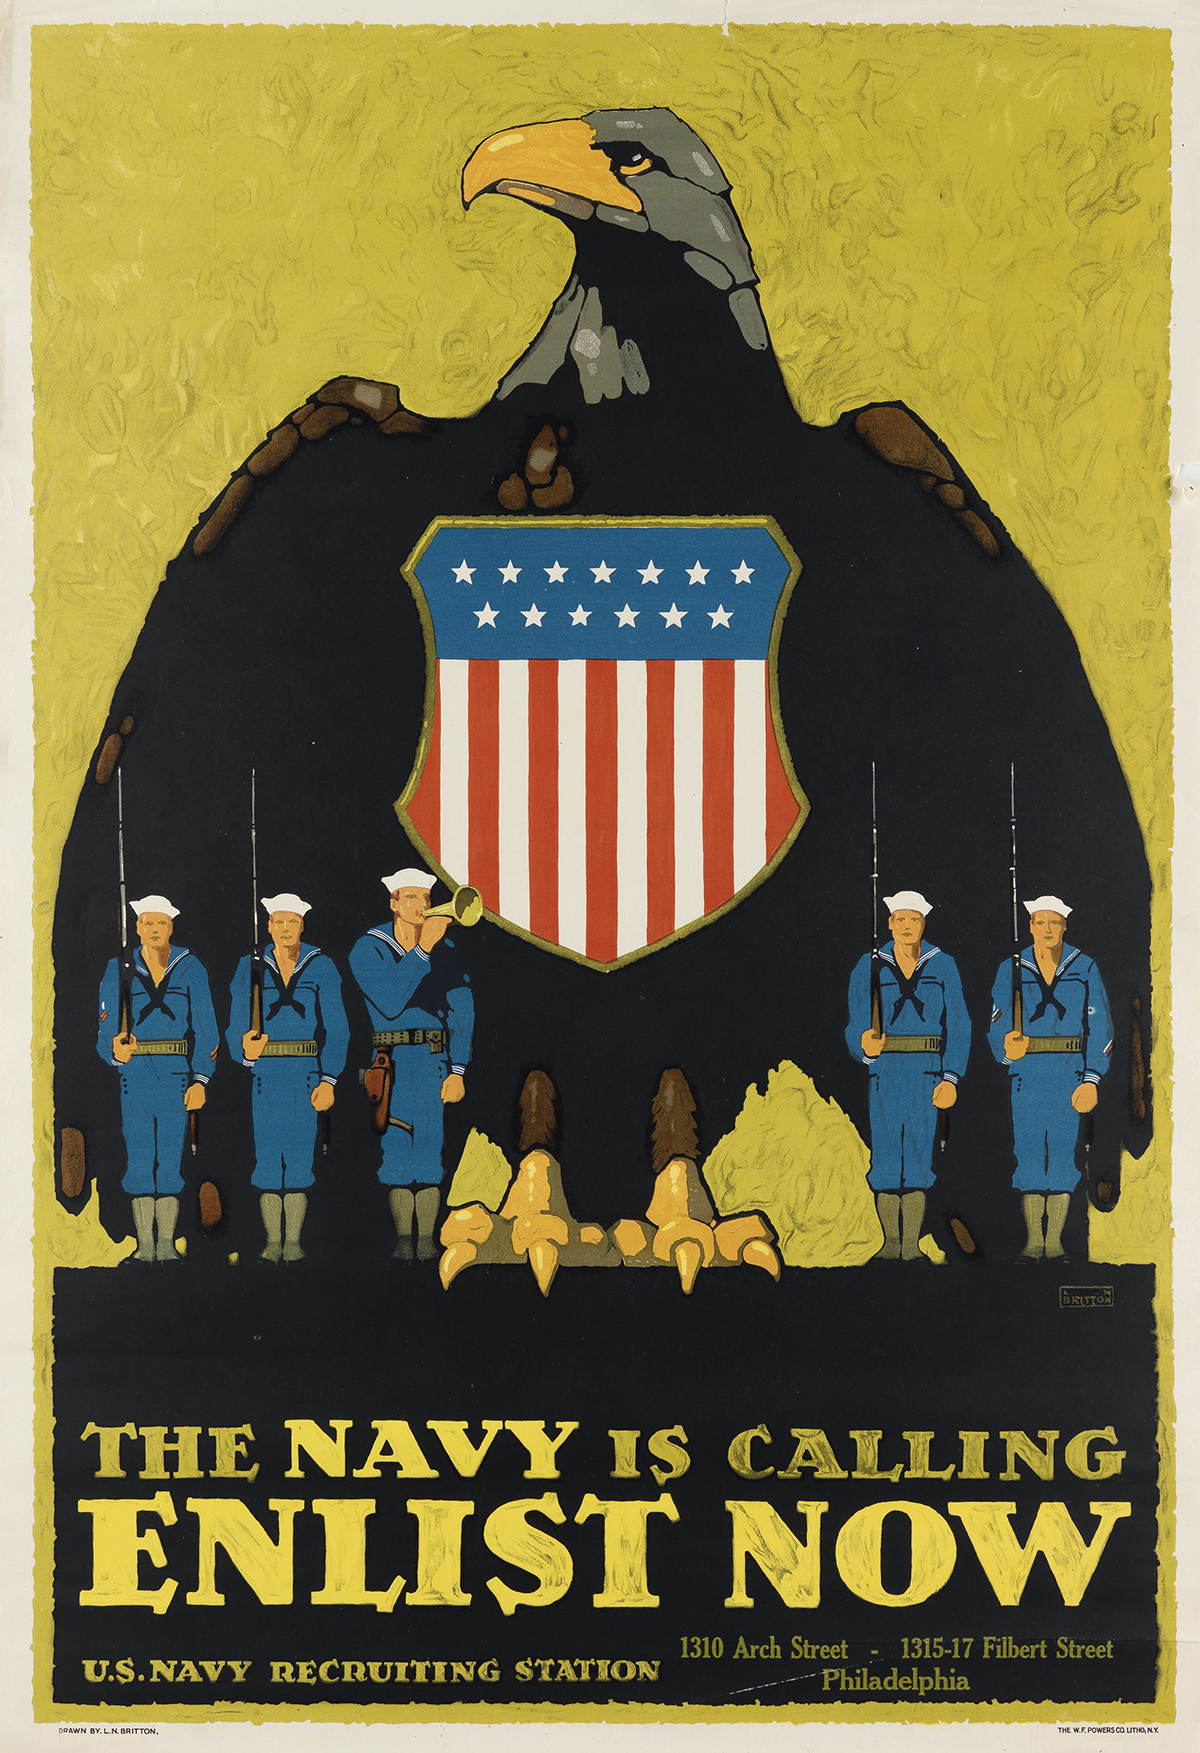 LN-BRITTON-(1858-1934)-THE-NAVY-IS-CALLING--ENLIST-NOW-Circa